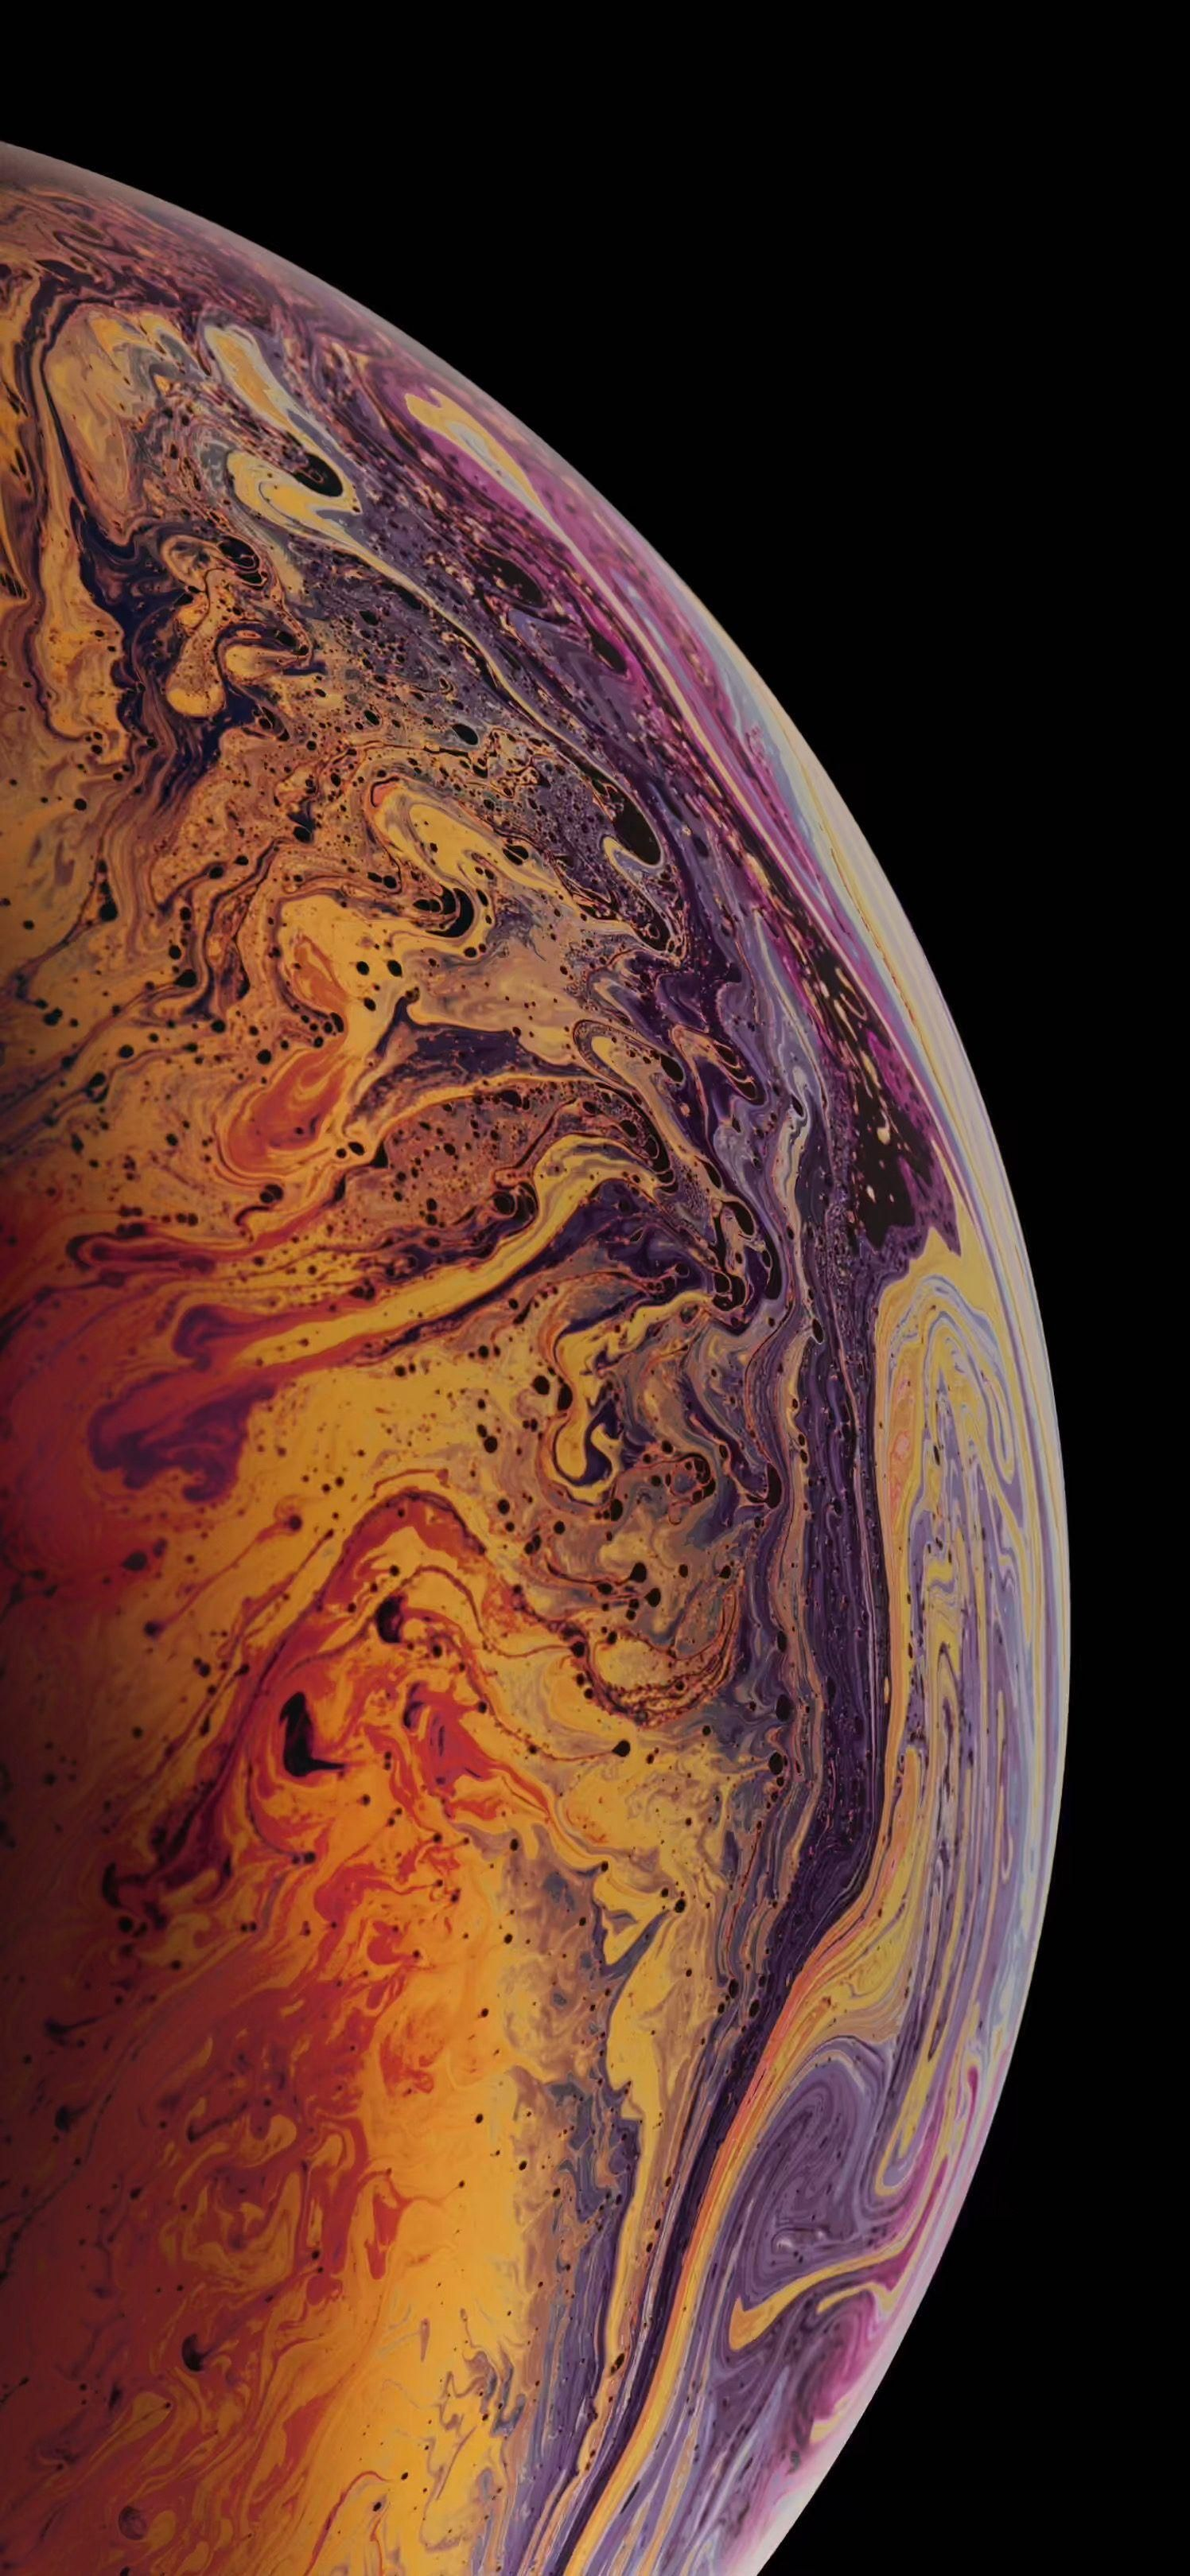 Iphone Xs Max Earth Wallpaper Hd Iphone Wallpaper Earth Iphone Wallpaper Ios Iphone Wallpaper Images